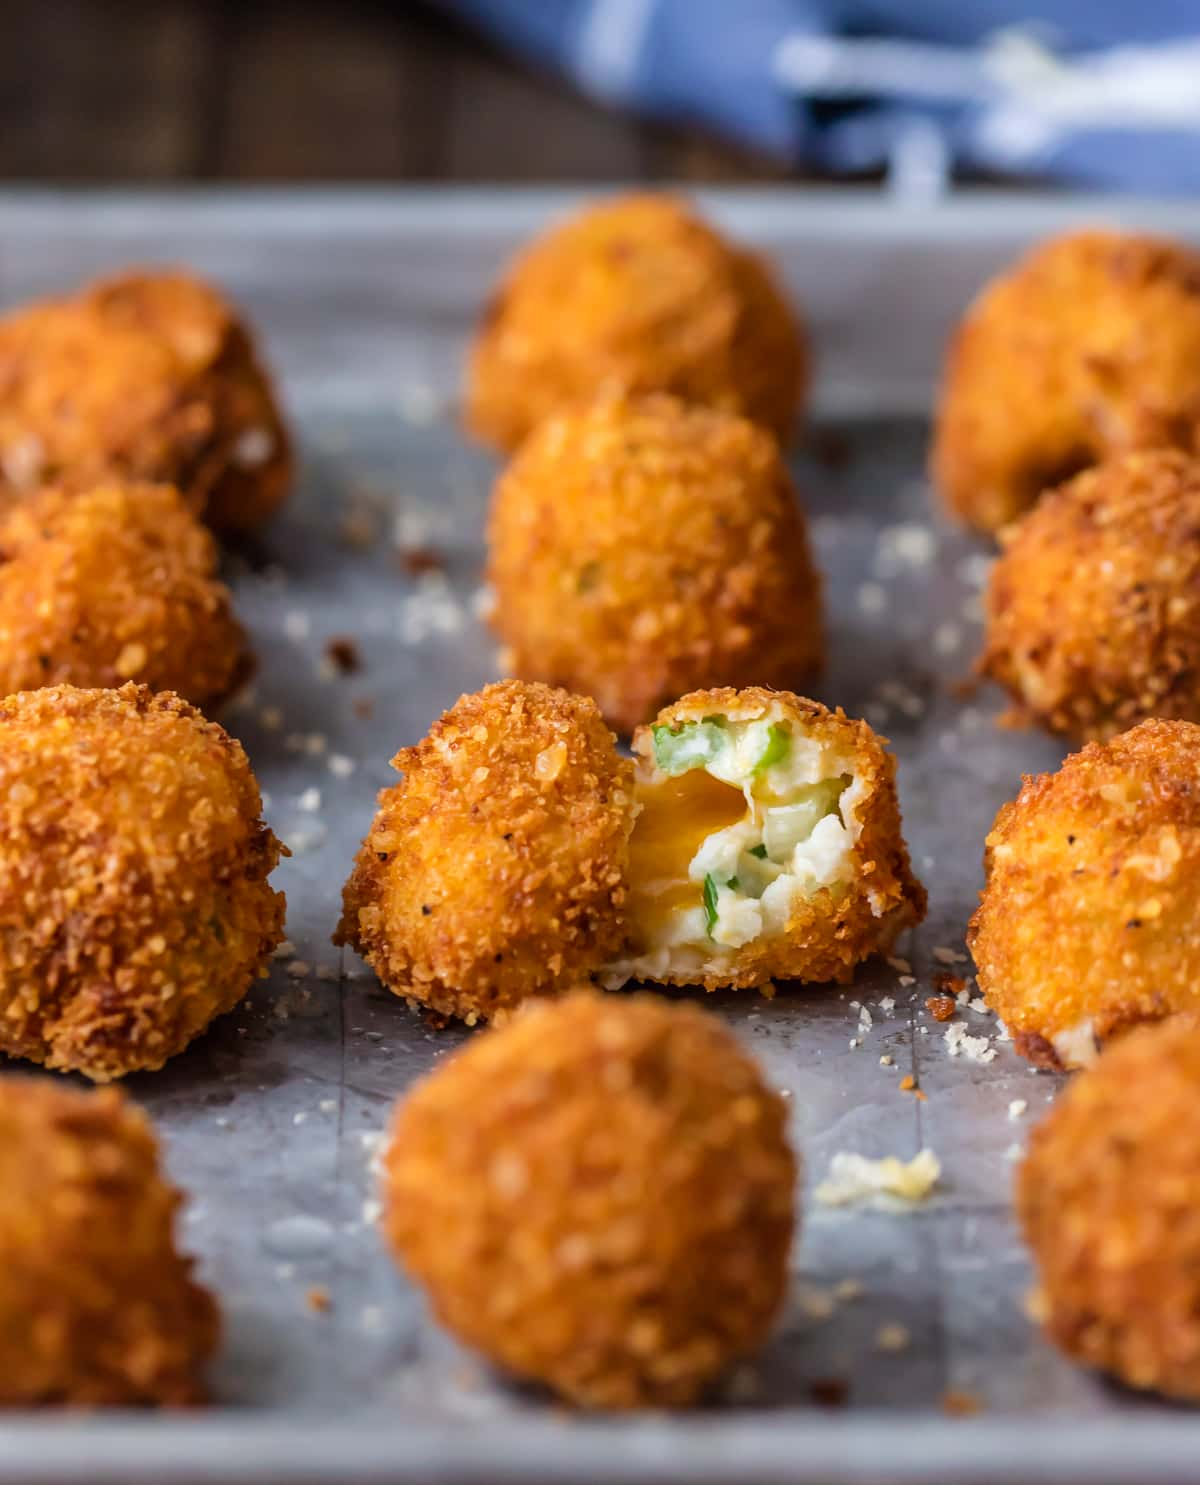 Deep Fried Mashed Potato Bites lined up on a baking sheet